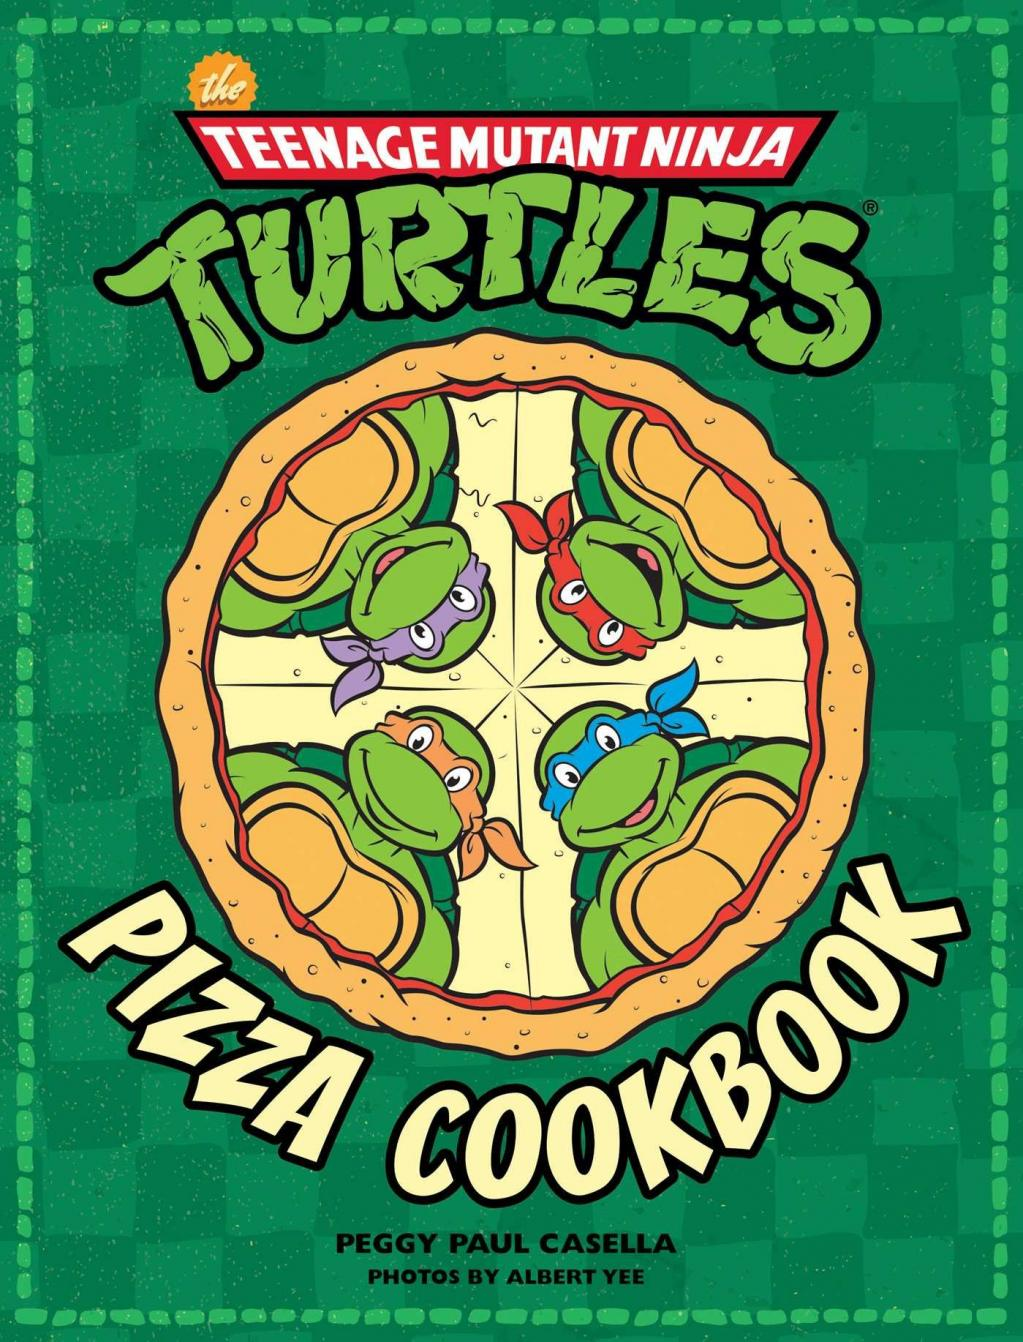 TEENAGE MUTANT NINJA TURTLES - Pizza Cookbook (UK)